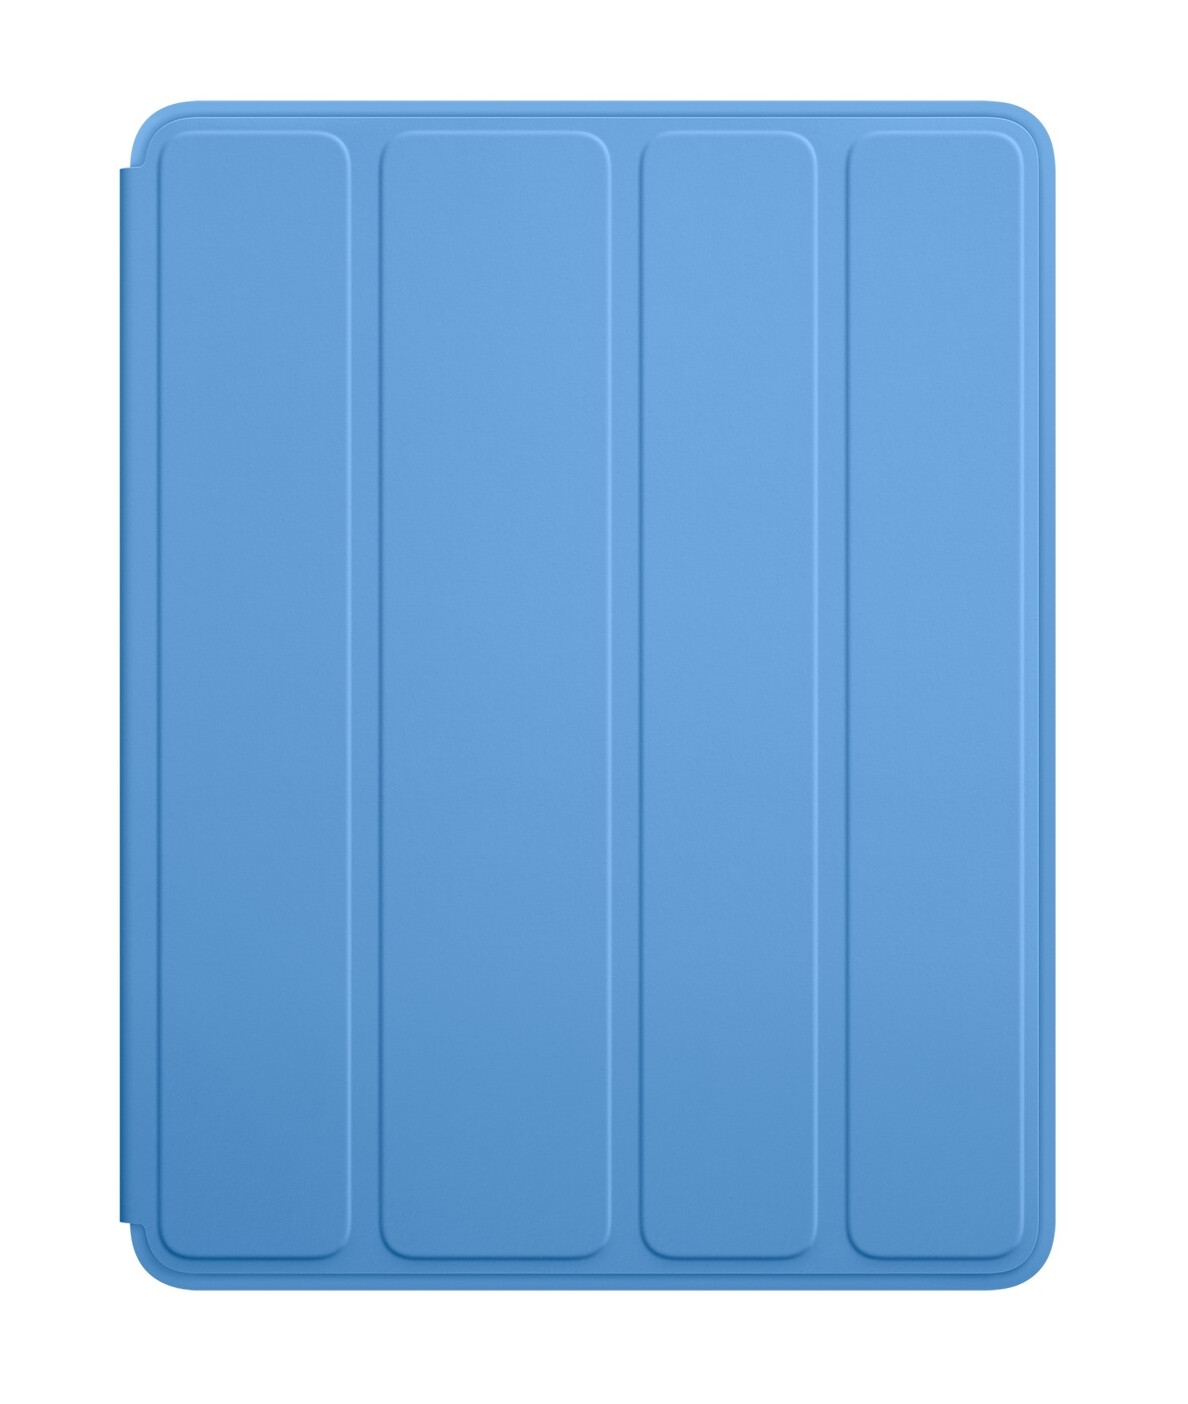 Smart Cover for the new iPad and iPad 2 has your back ...